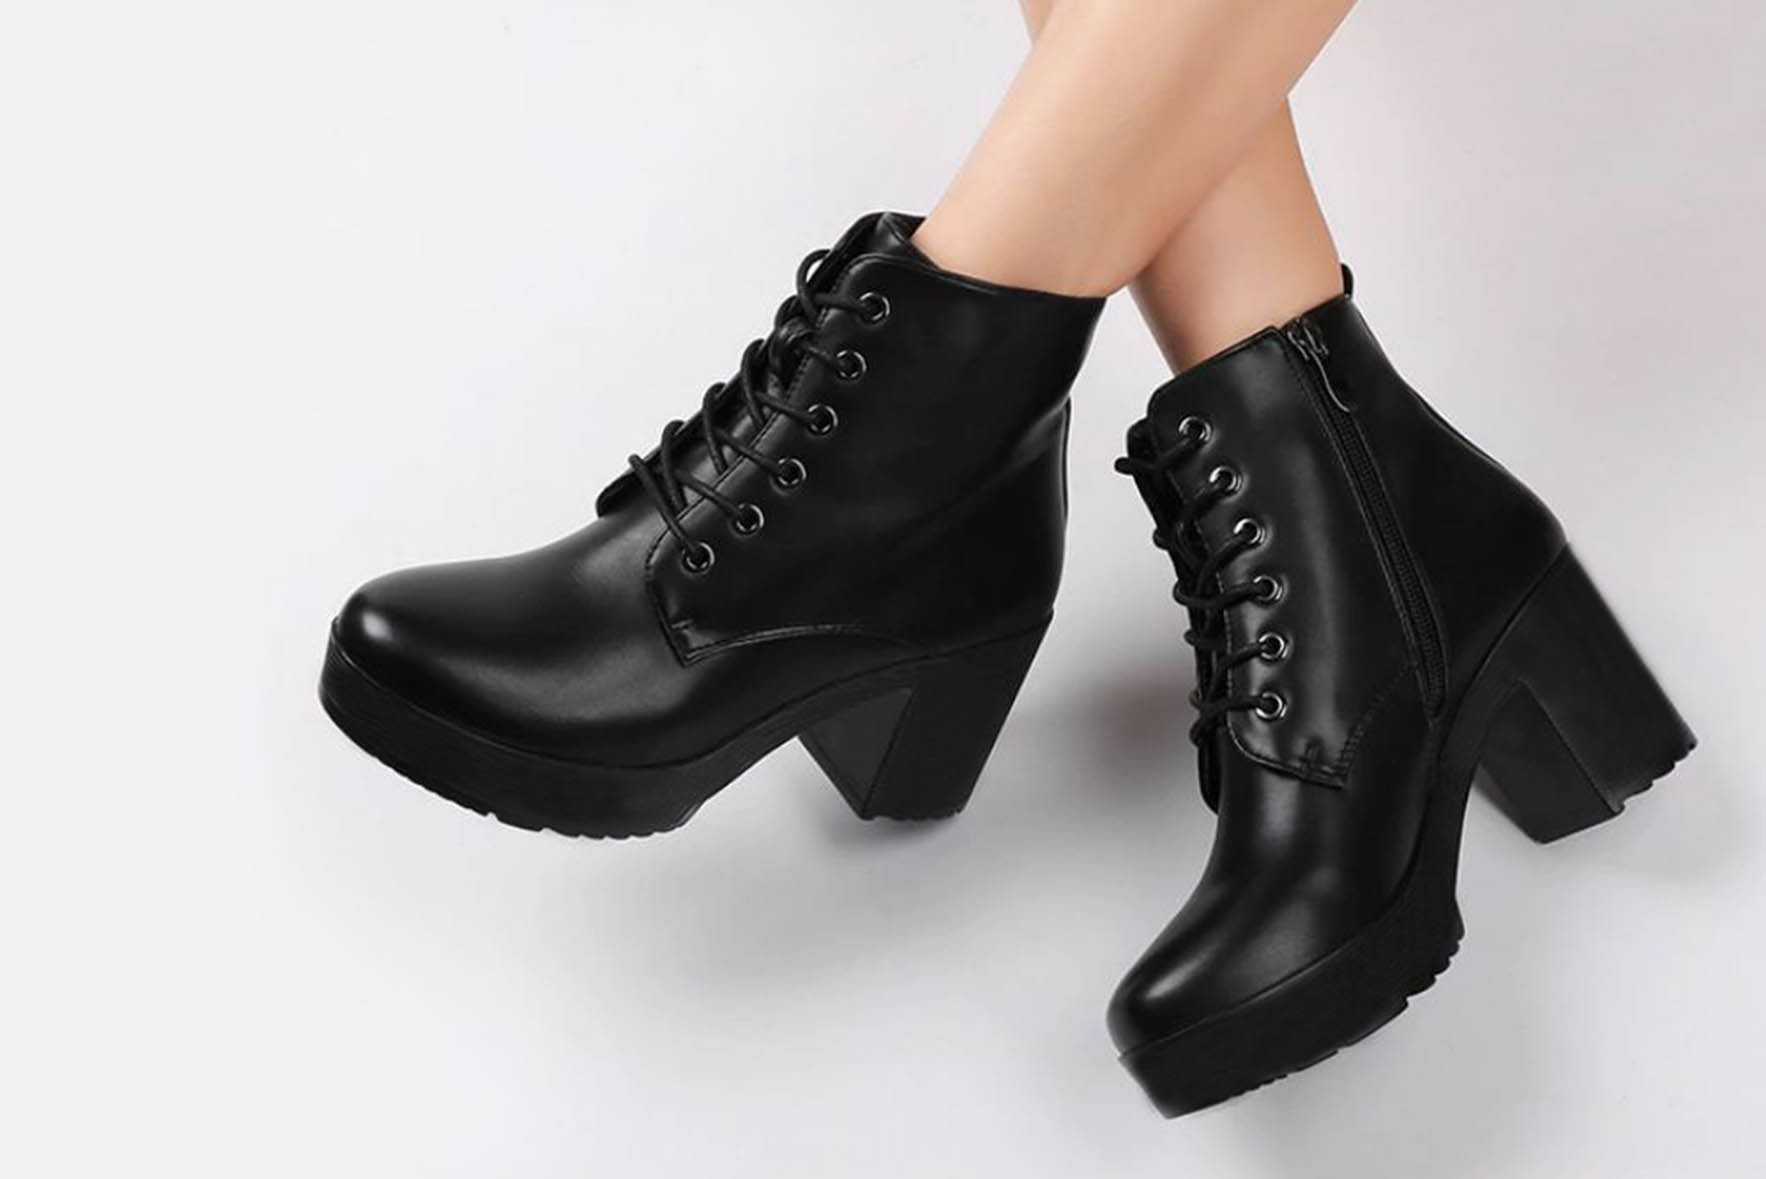 51bb137d4223 Boots - Street Style Store